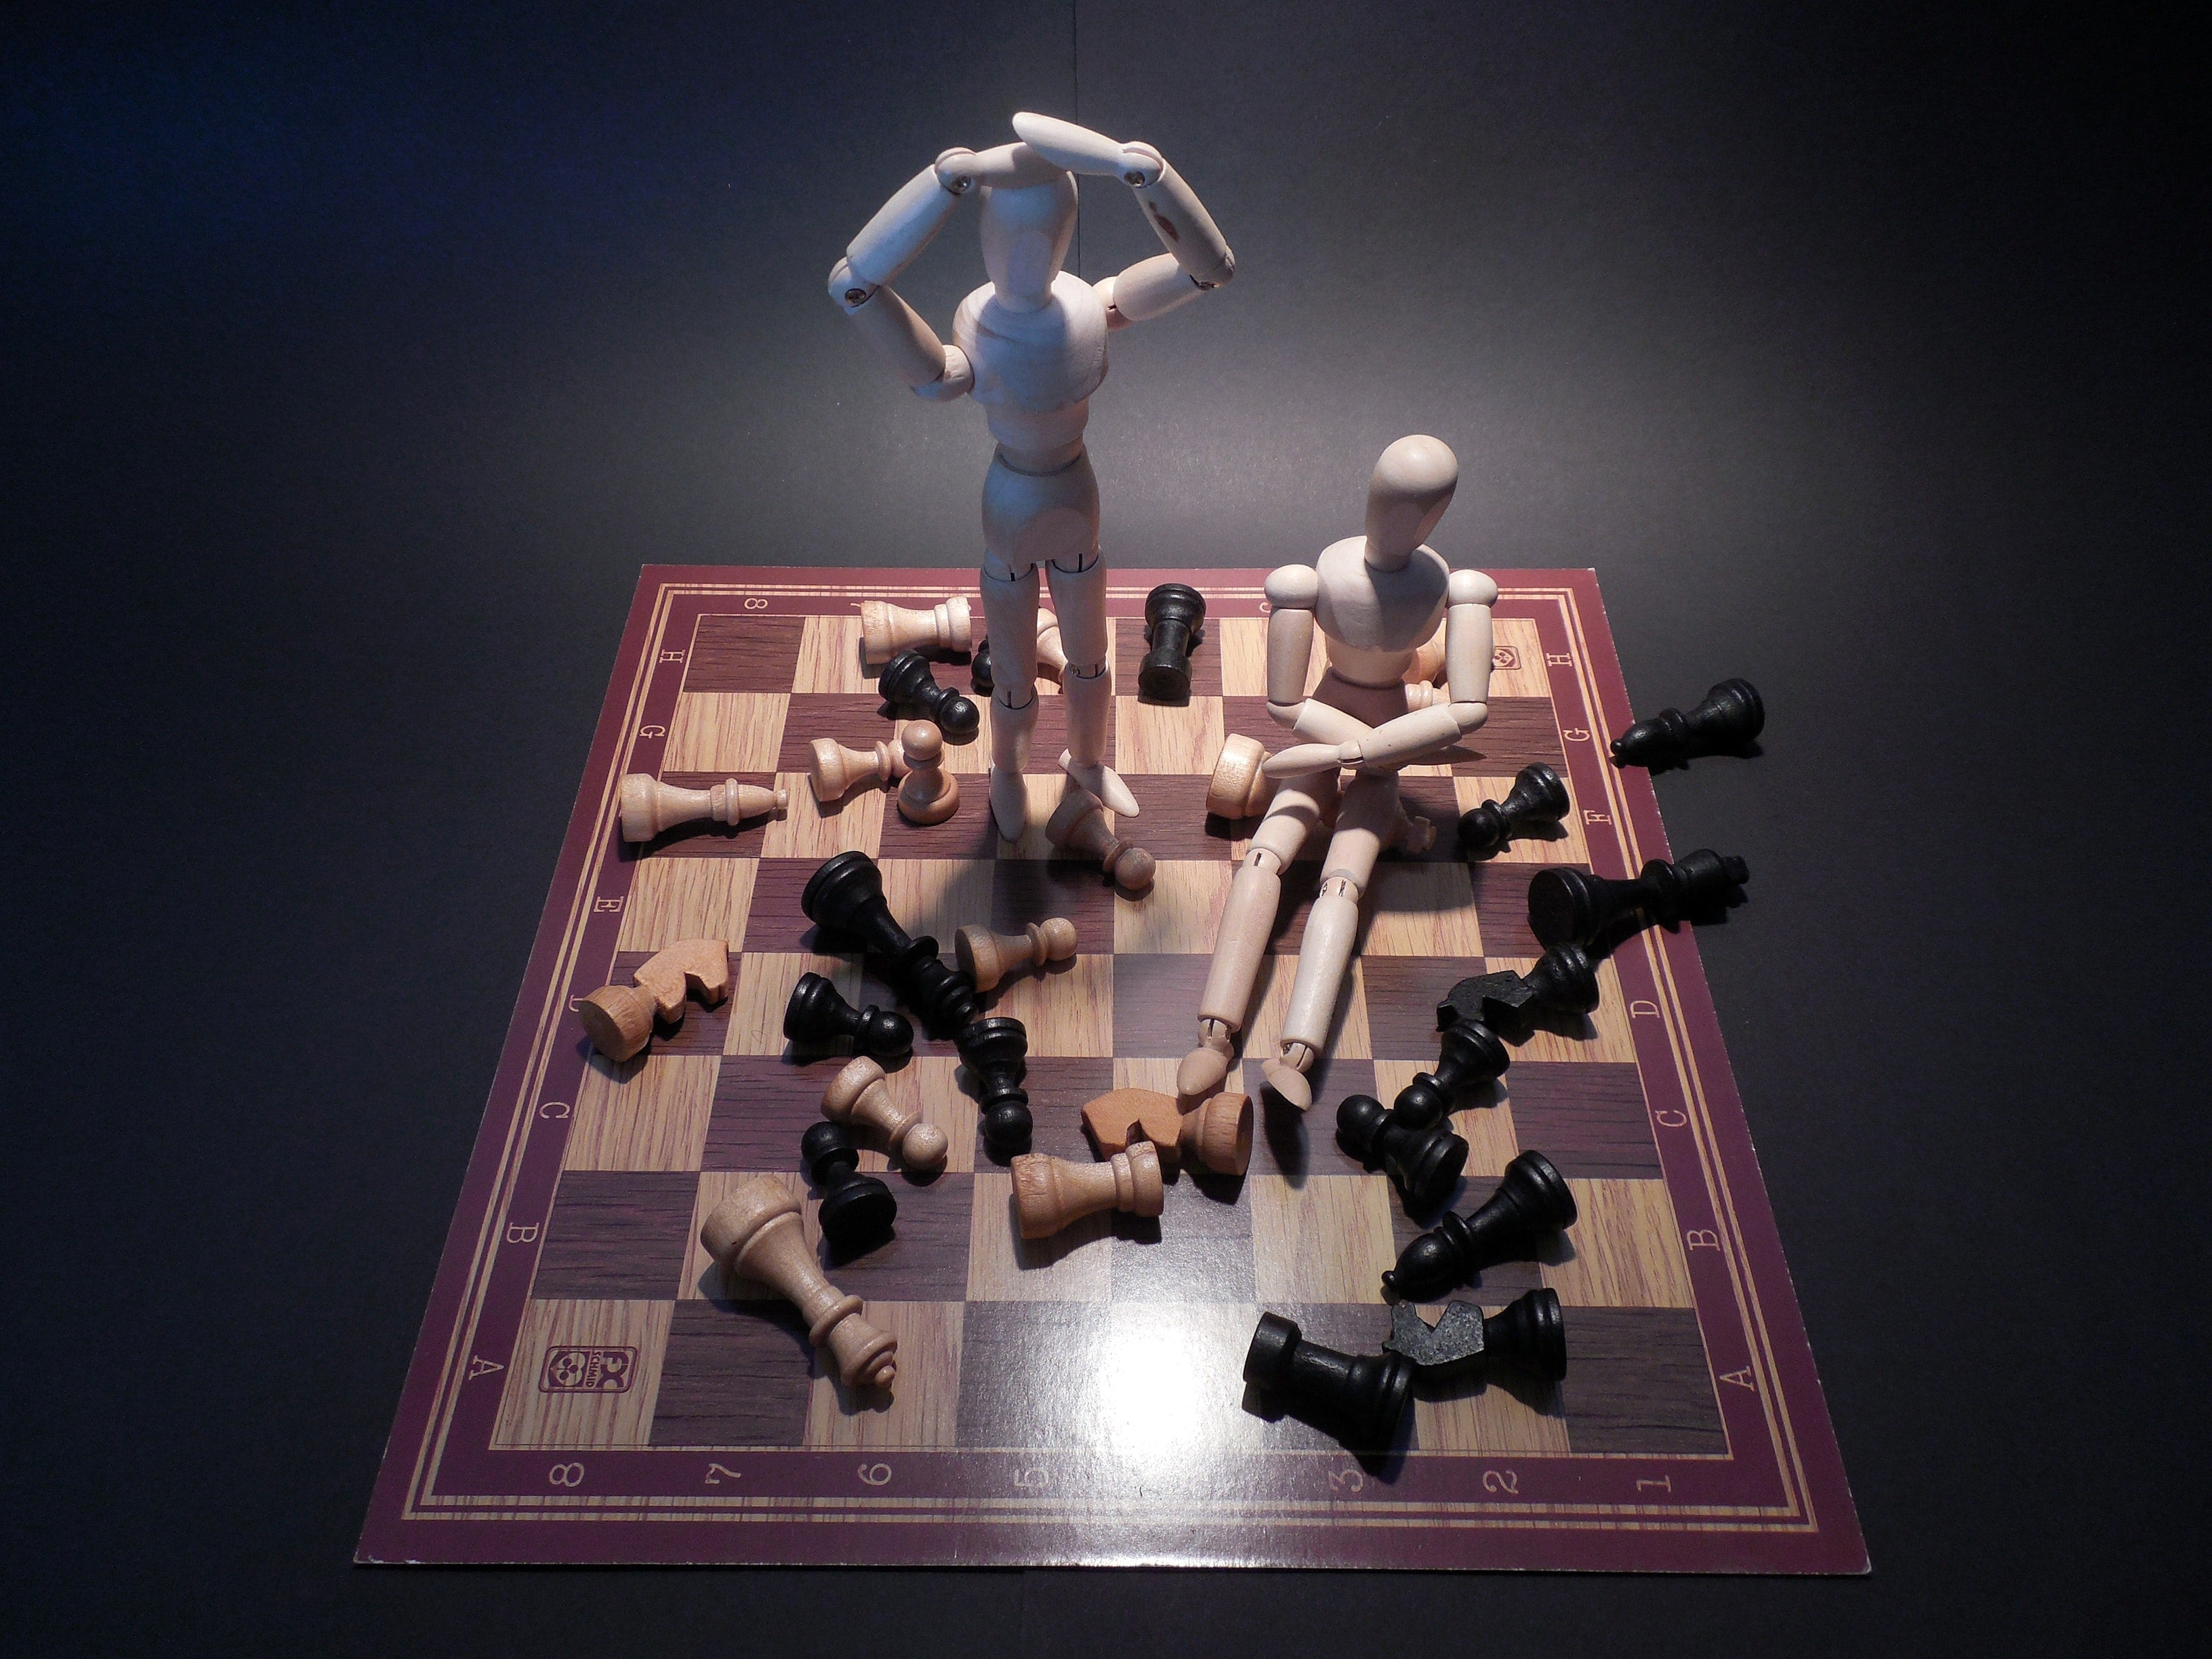 Wooden figures on a checkerboard miming symptoms of chronic stress